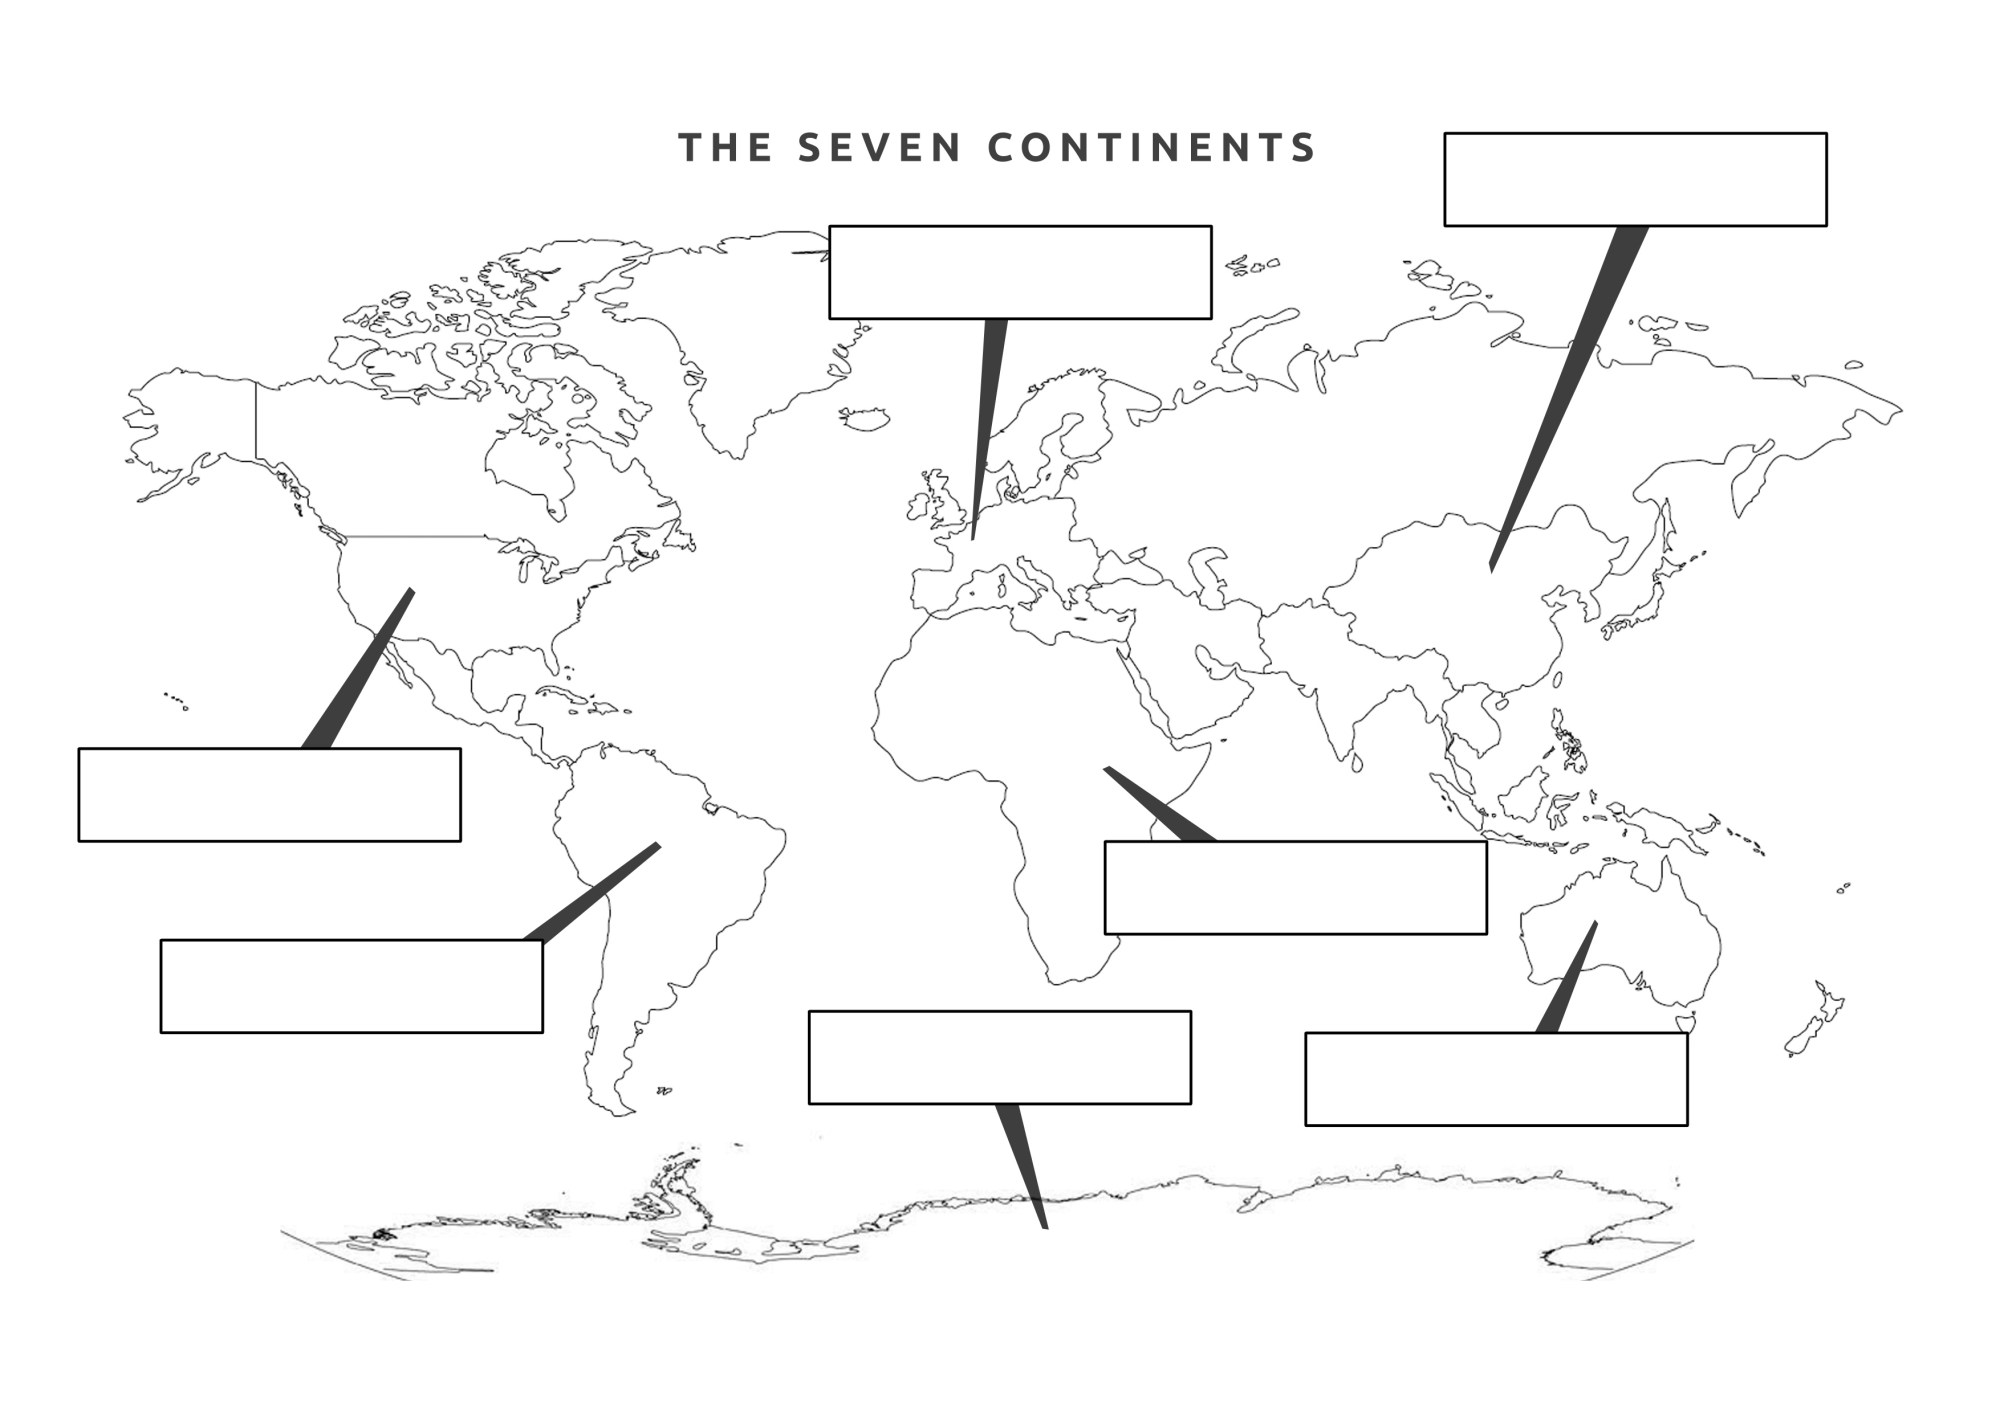 hight resolution of The Seven Continents